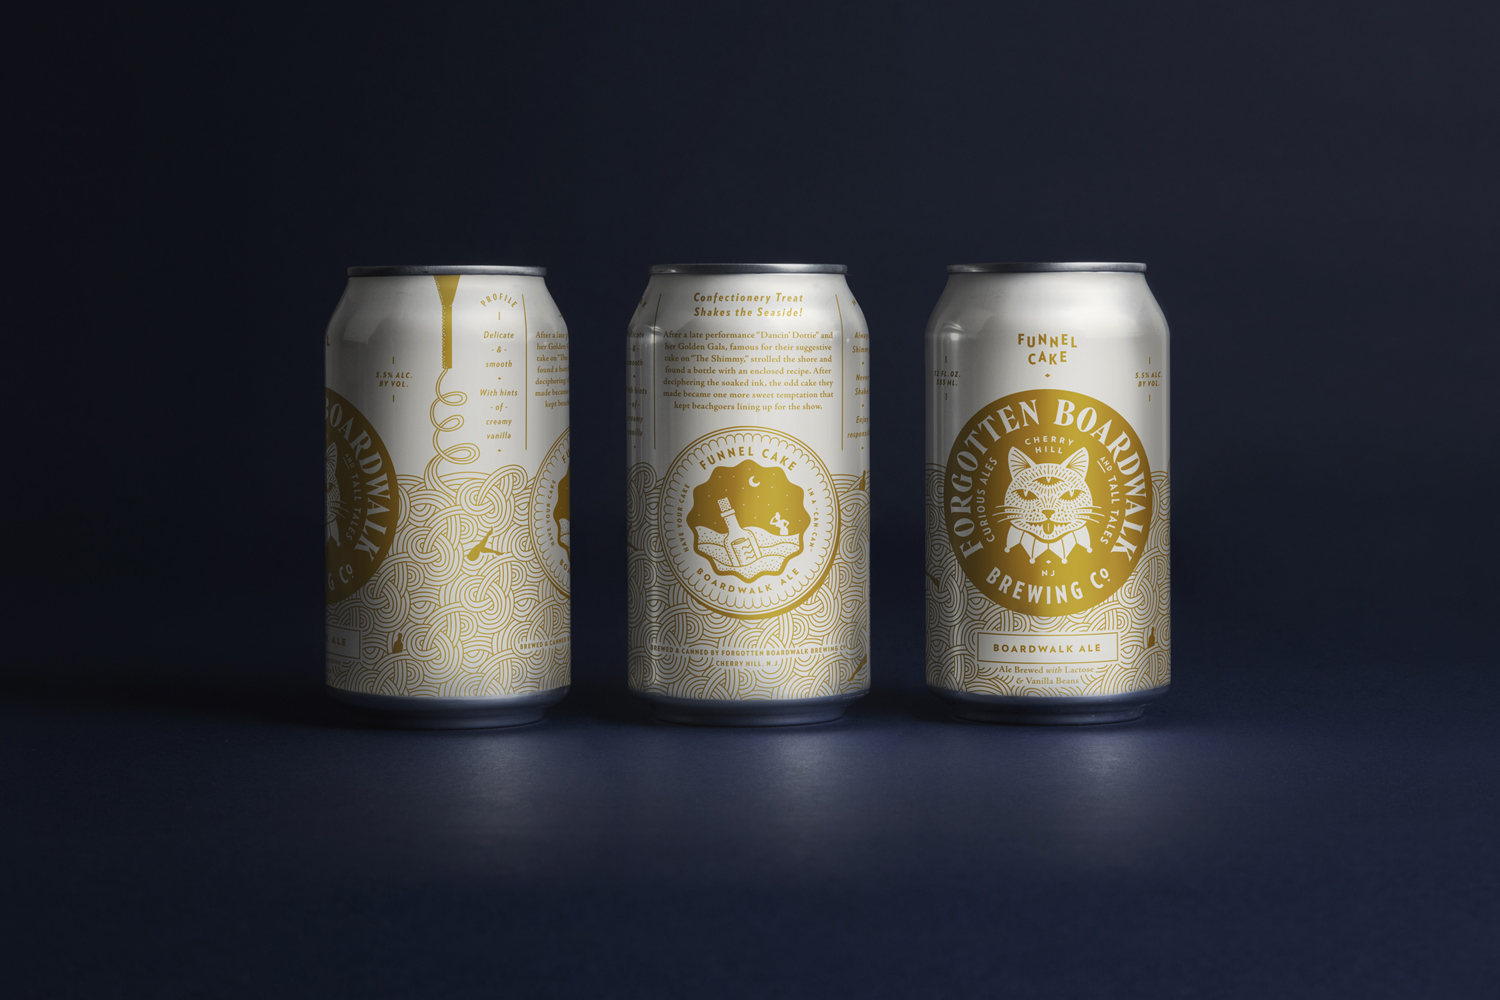 Brand identity and packaging for craft beer brewer Forgotten Boardwalk by Perky Bros